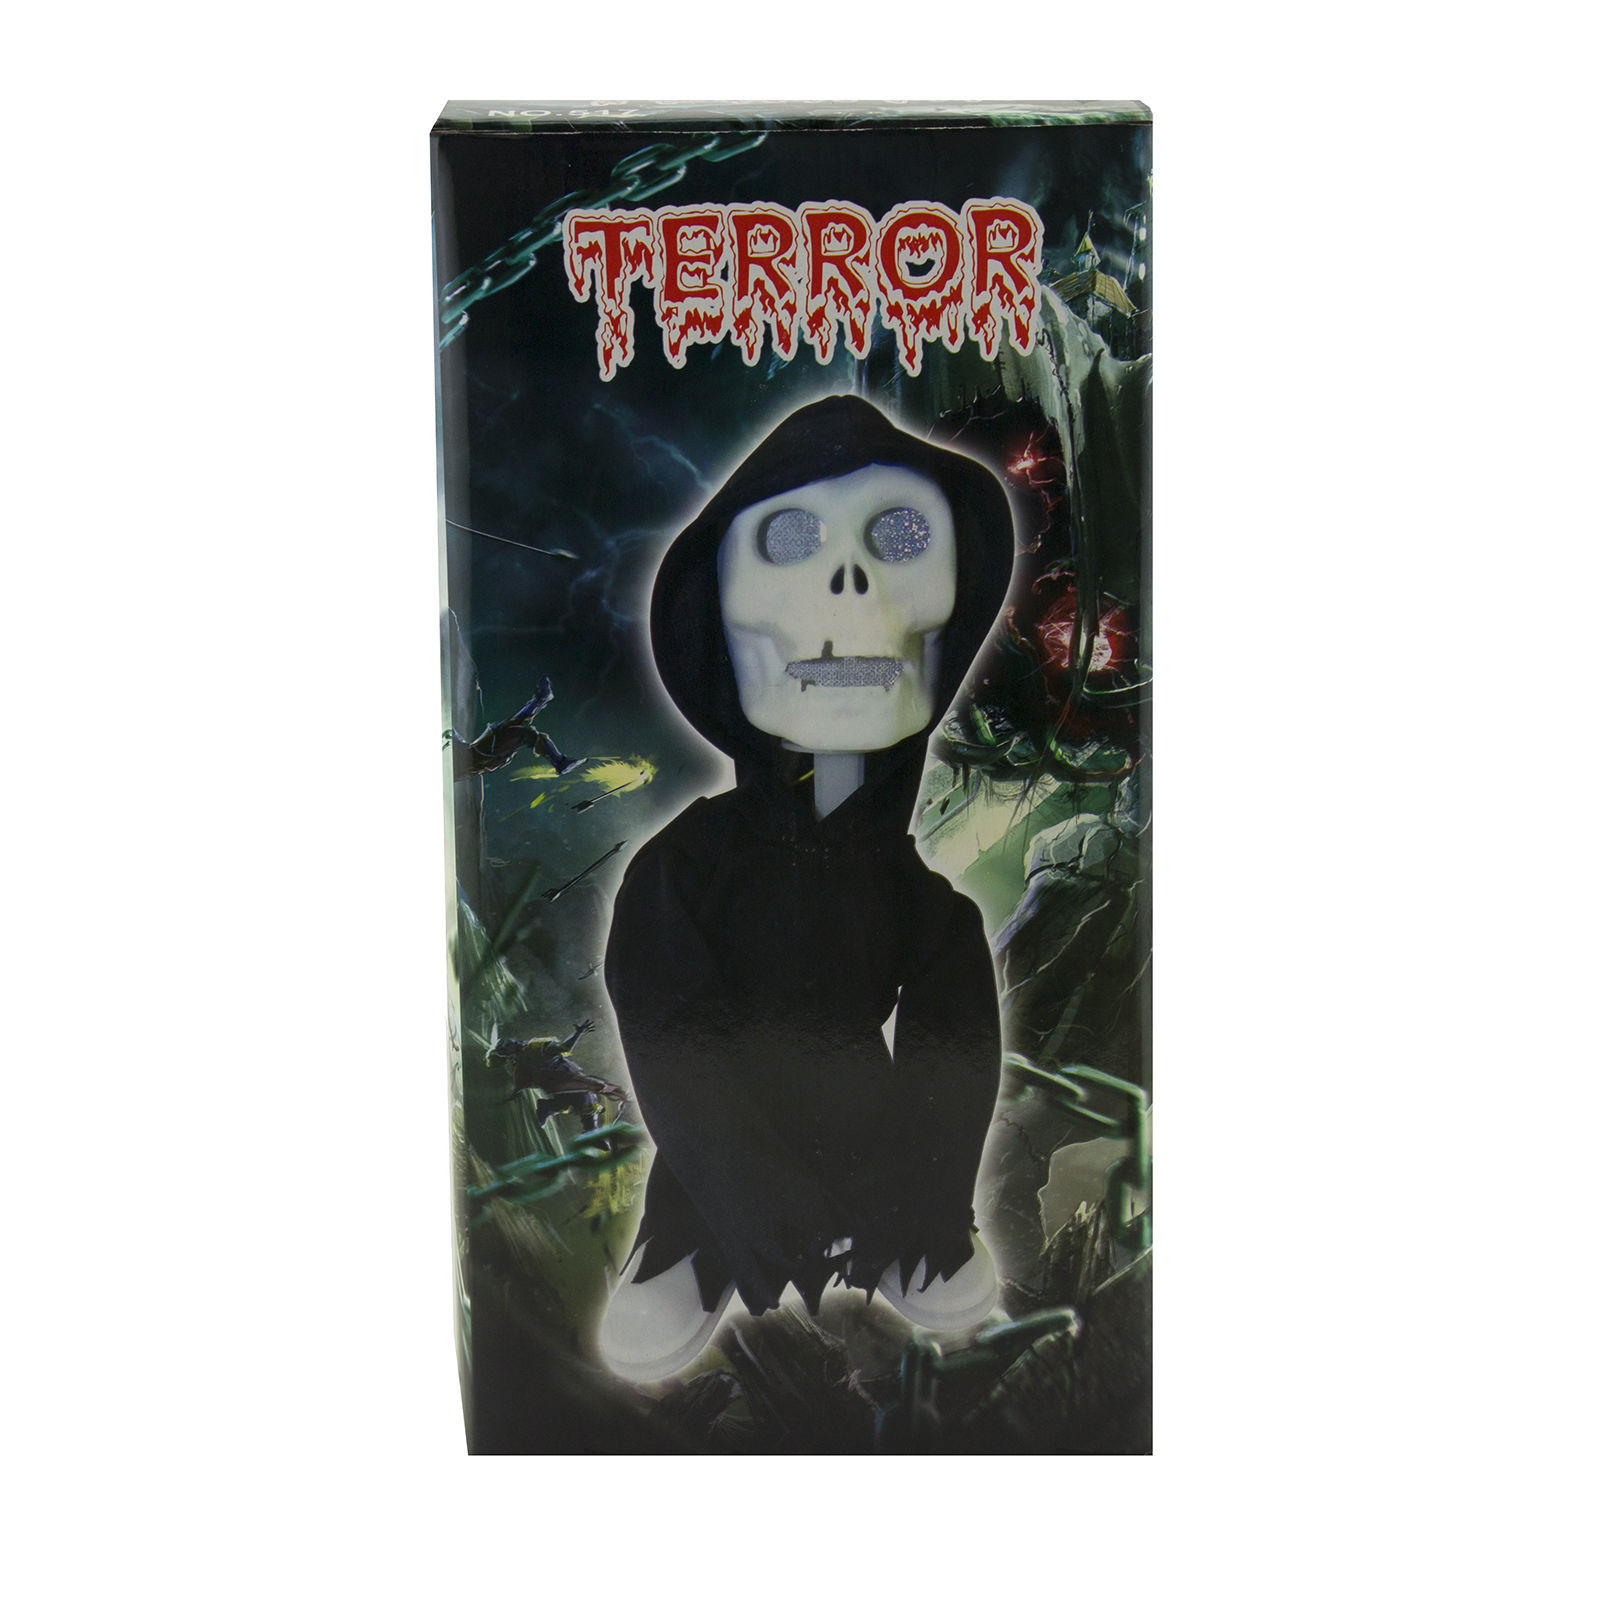 Walking Talking Light Up Grim Reaper Animated Skeleton Halloween Decoration Eyes